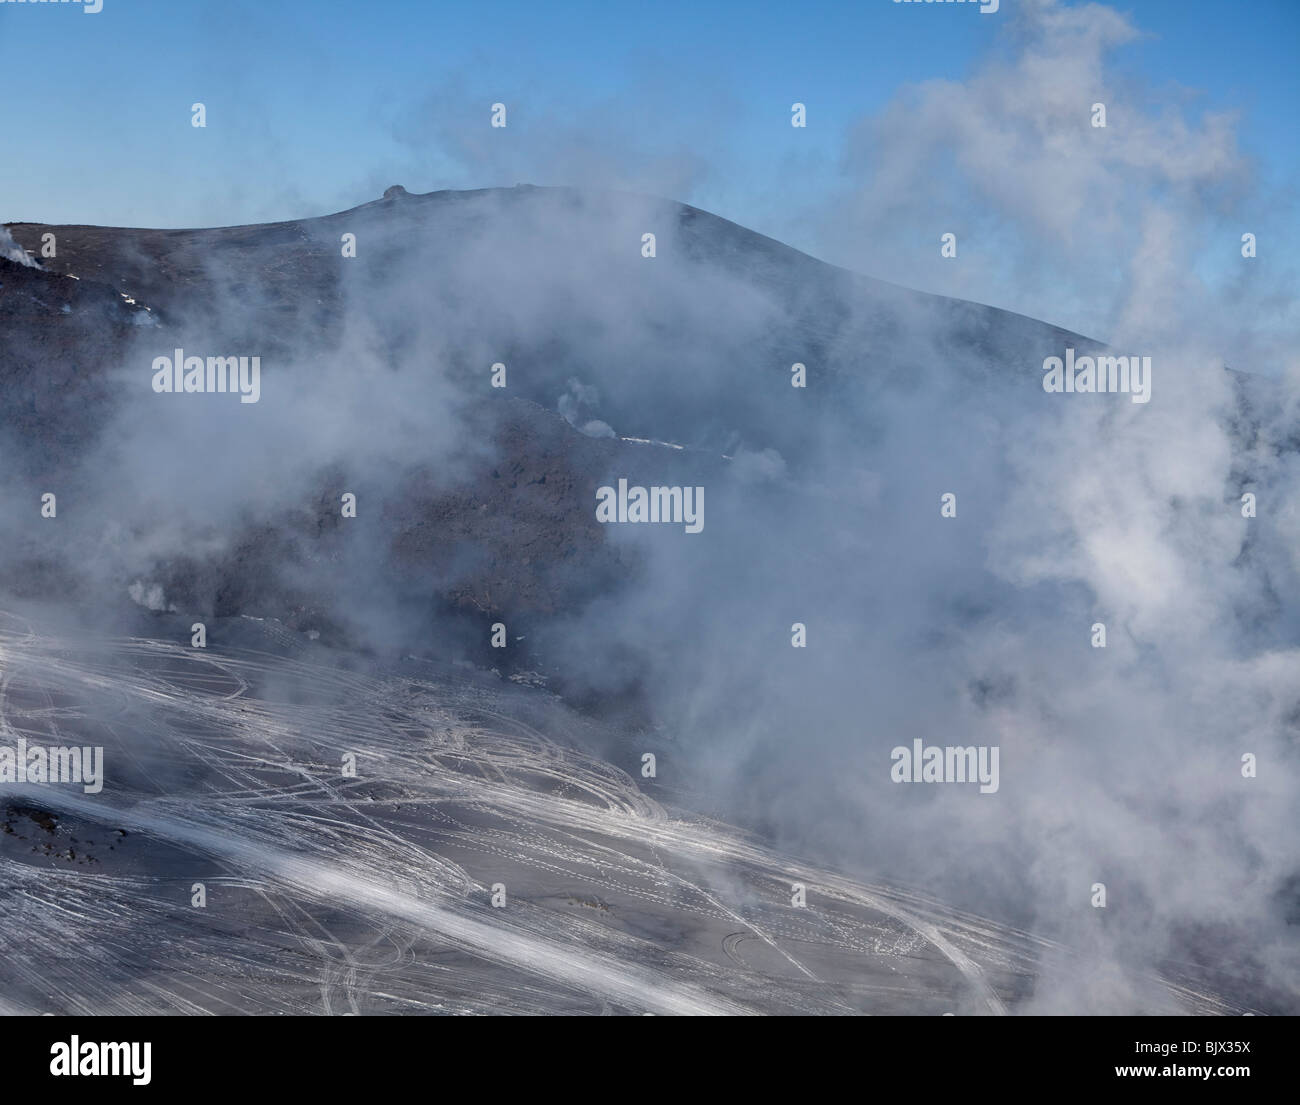 Poisoned gas goes up from the volcano eruption in Eyjafjallajokull, Iceland - Stock Image